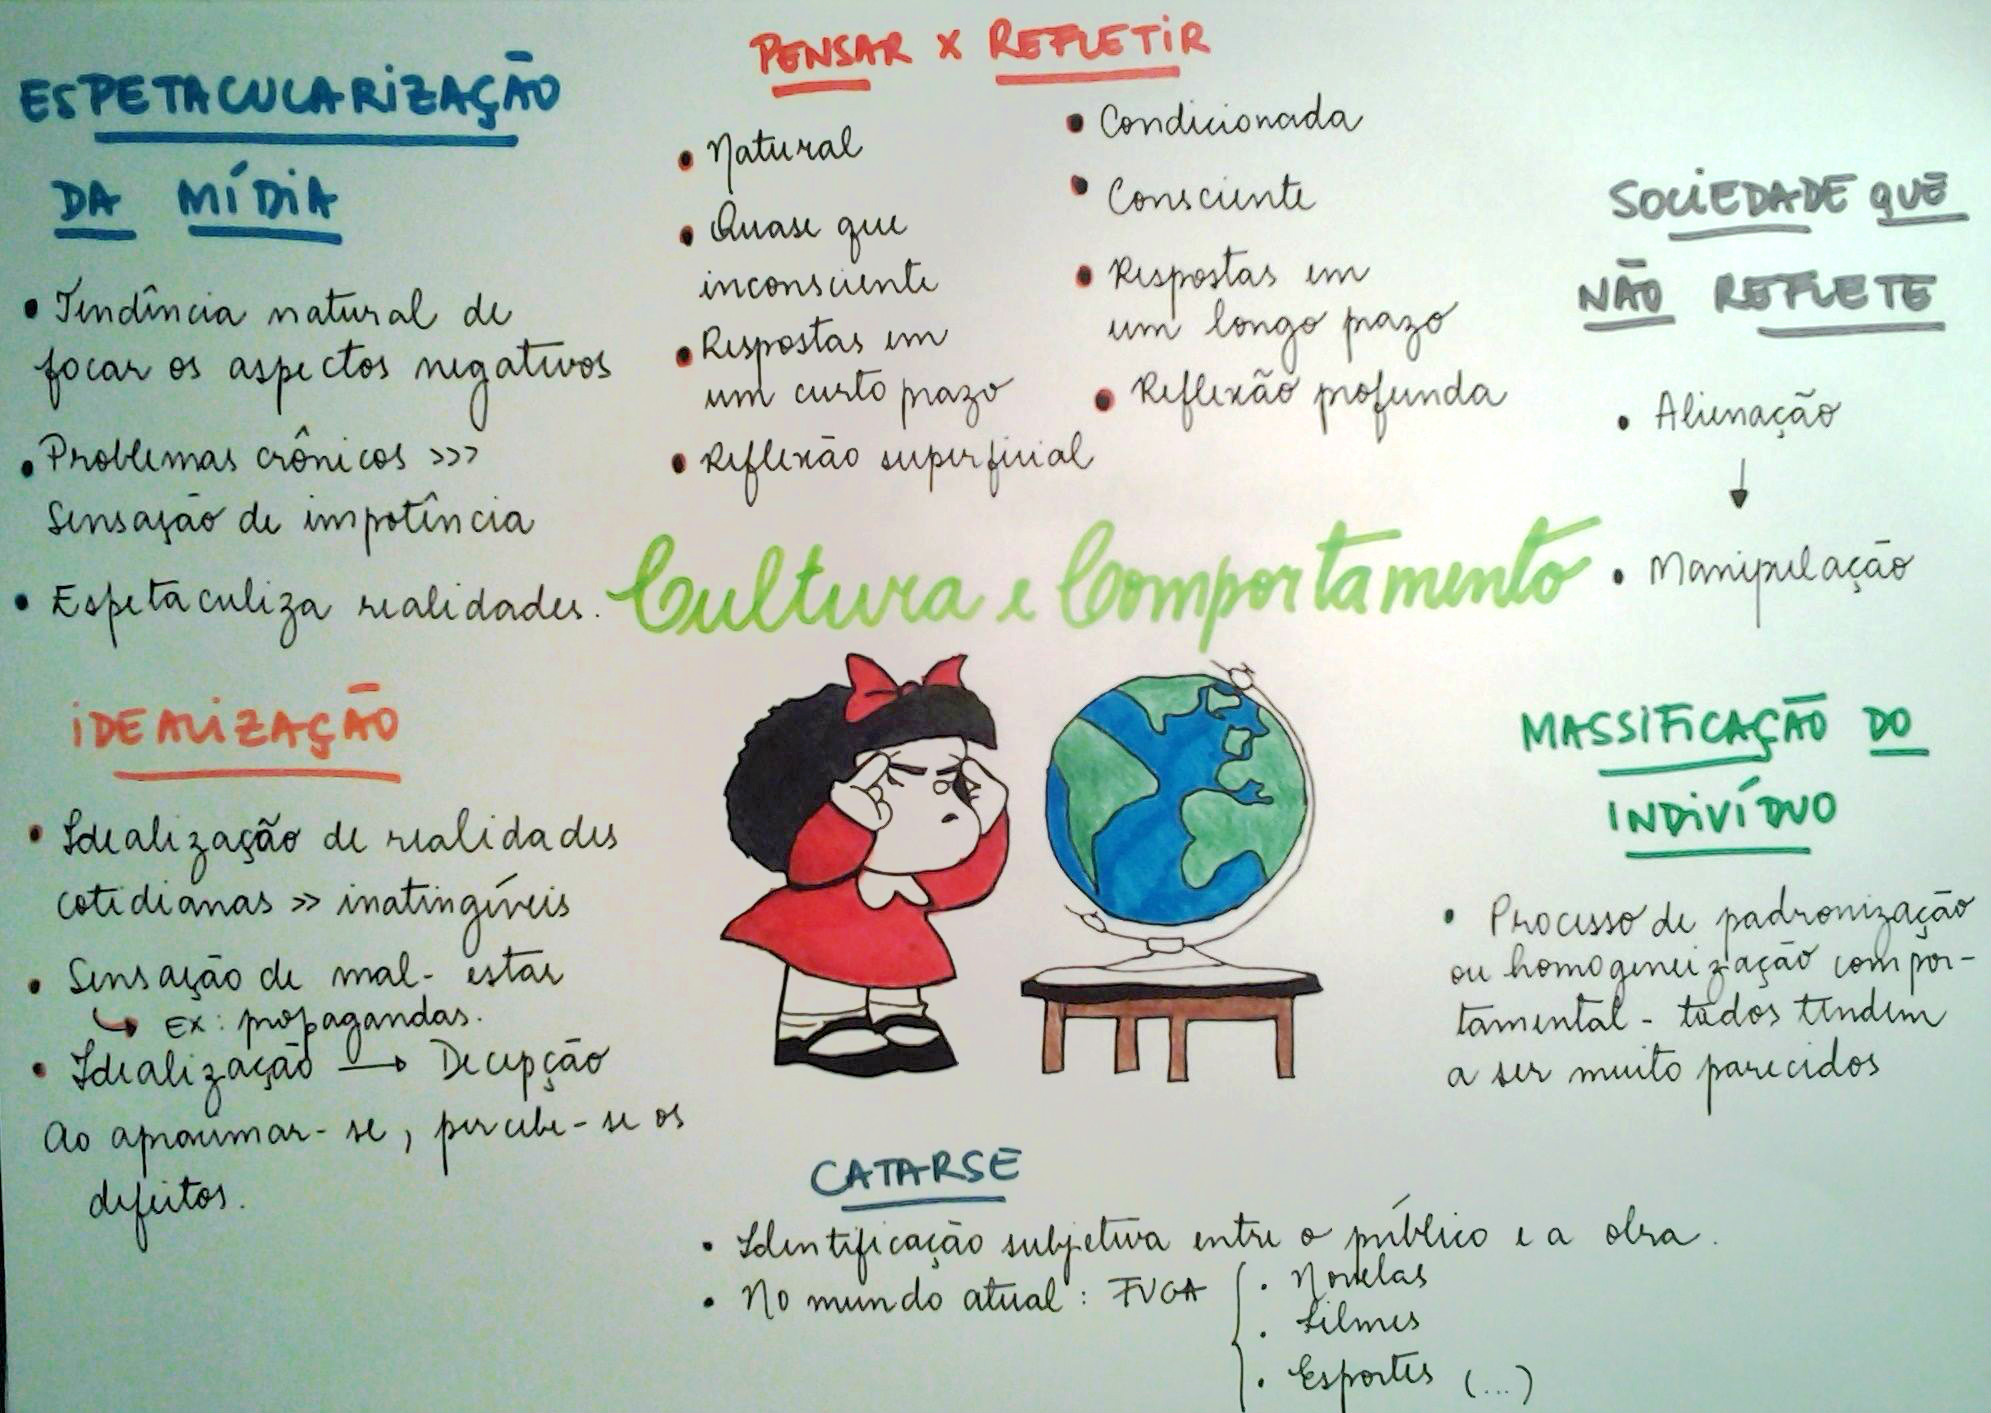 mapa-red-cultura-comportamento